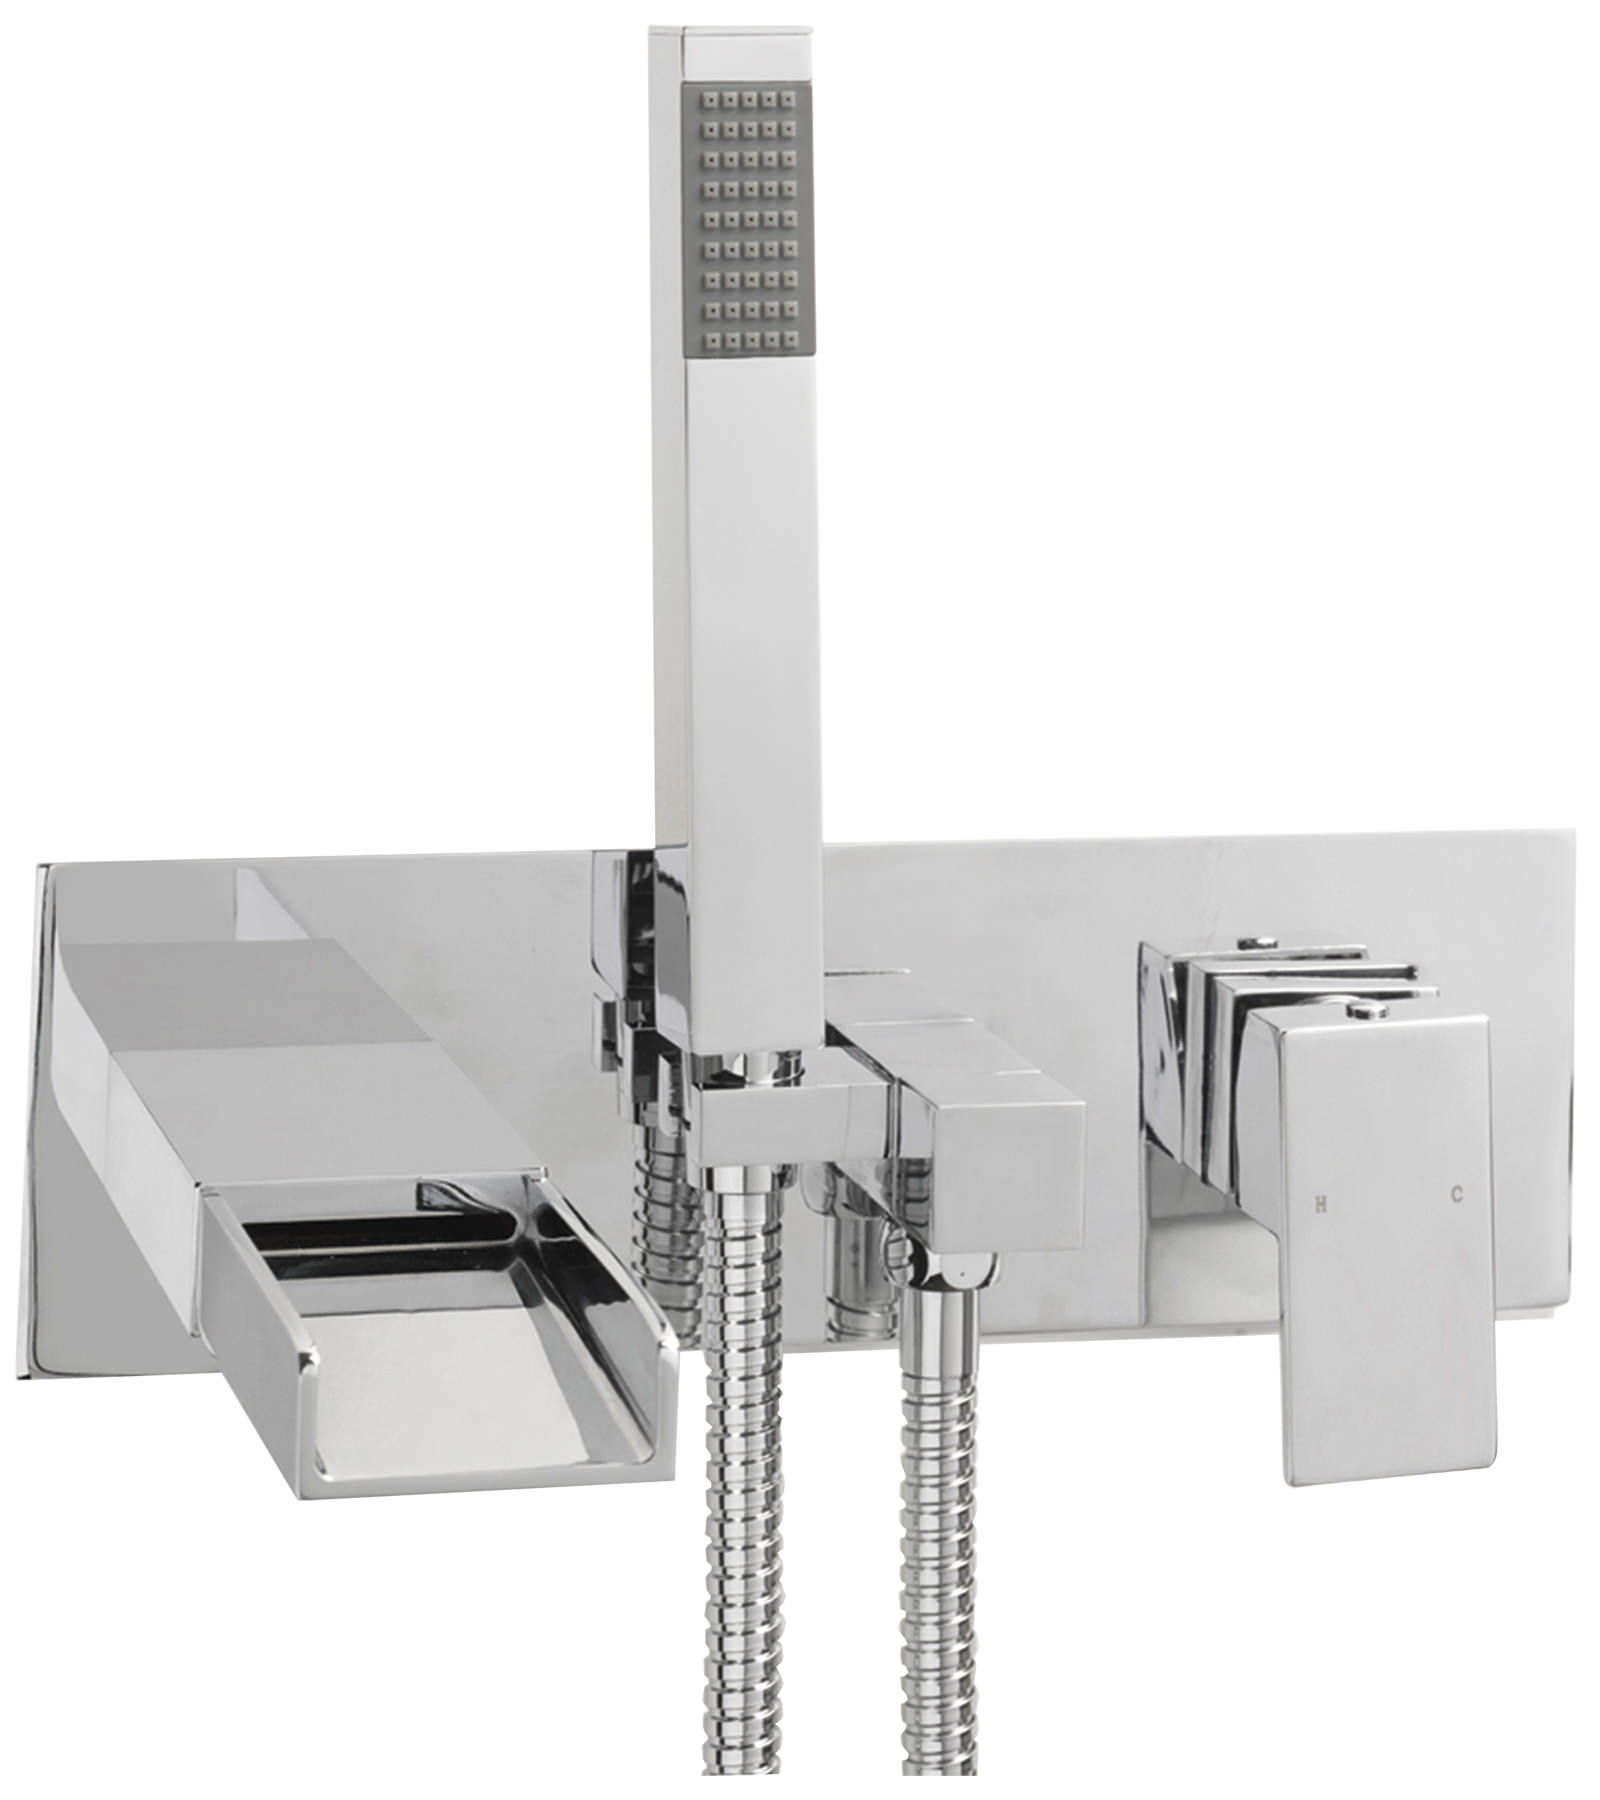 sagittarius nice wall mounted bath shower mixer tap ni 127 c bathstore ho to install a bath shower mixer tap the